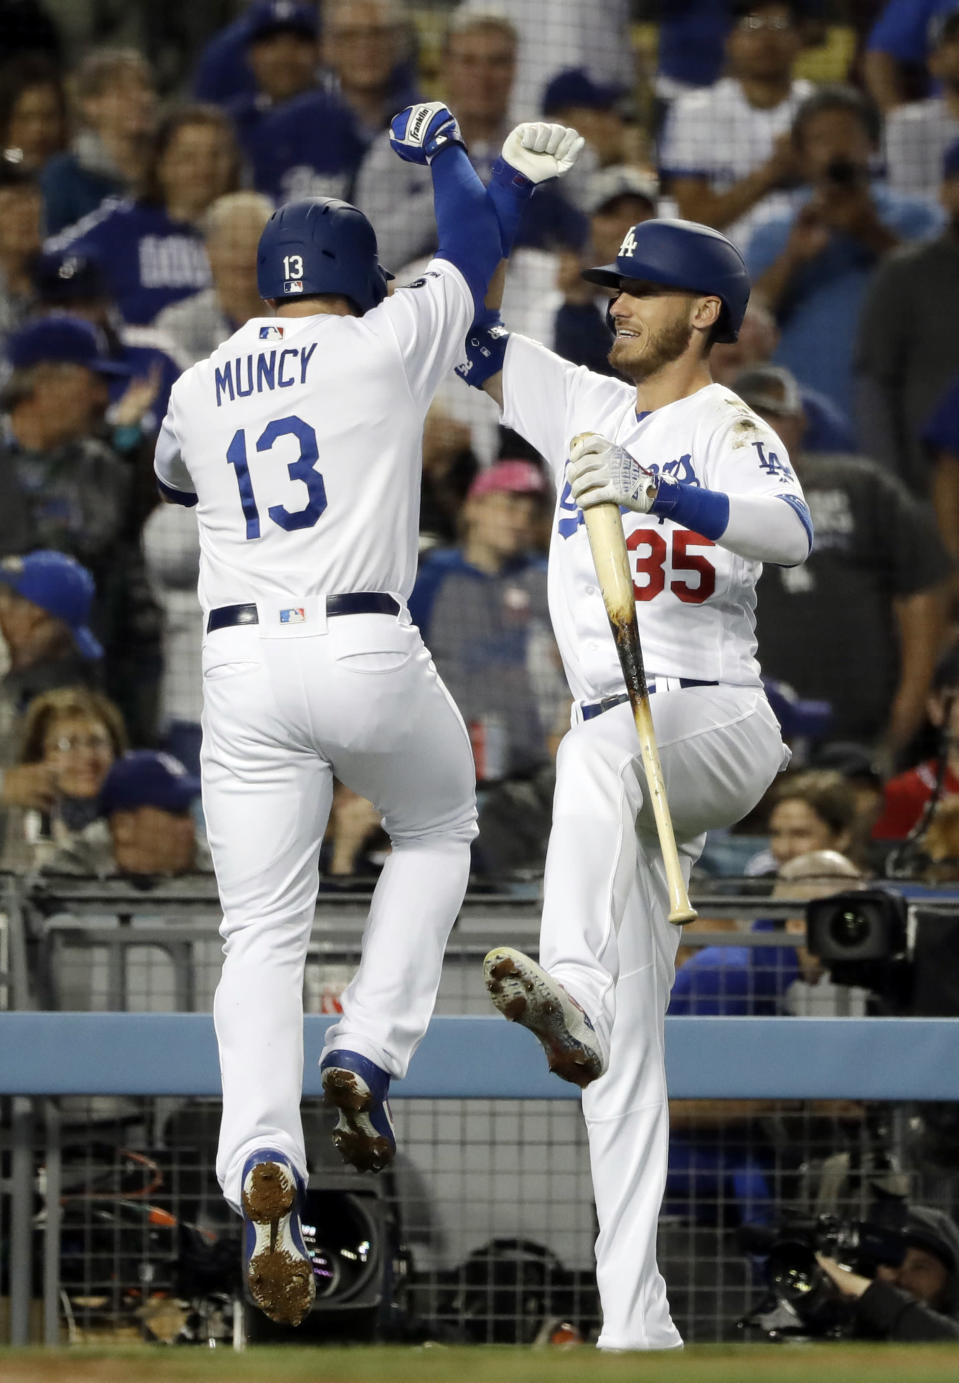 Los Angeles Dodgers' Max Muncy (13) celebrates his solo home run with Cody Bellinger during the third inning of the team's baseball game against the Atlanta Braves on Wednesday, May 8, 2019, in Los Angeles. (AP Photo/Marcio Jose Sanchez)